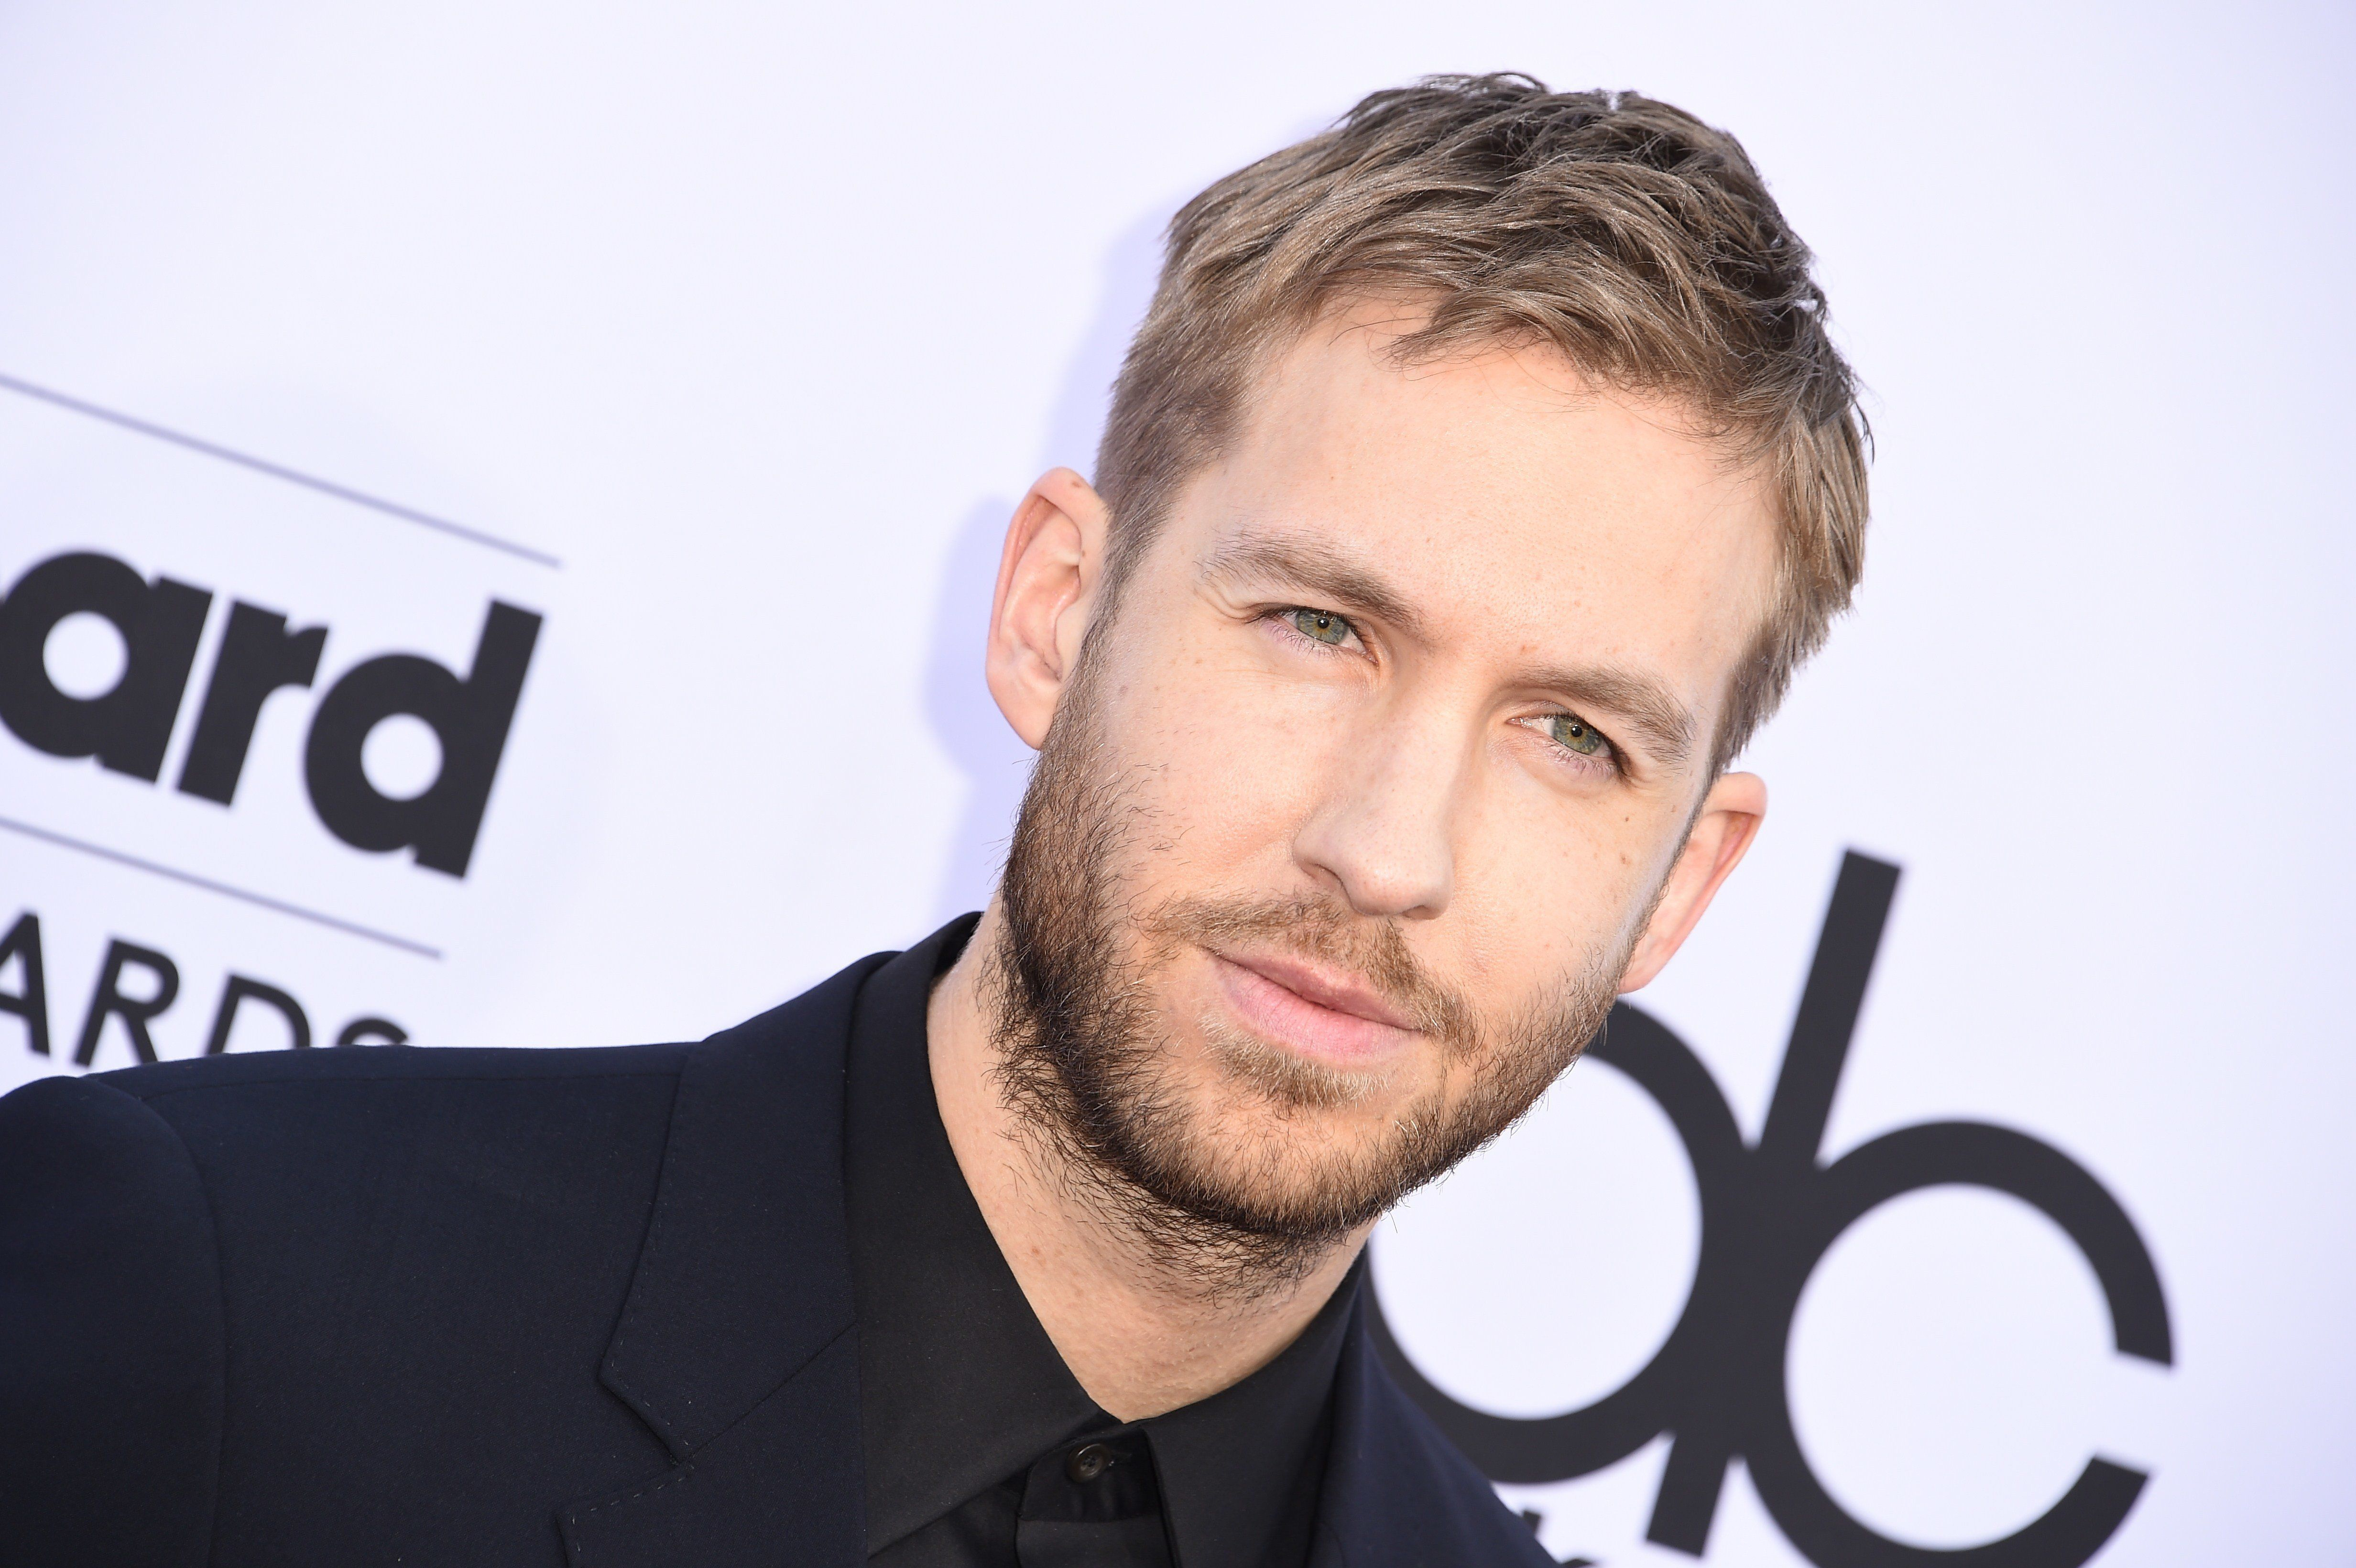 Calvin Harris attends the 2015 Billboard Music Awards, May 17, 2015, at the MGM Grand Garden Arena in Las Vegas, Nevada.  AFP PHOTO / ROBYN BECK        (Photo credit should read ROBYN BECK/AFP/Getty Images)